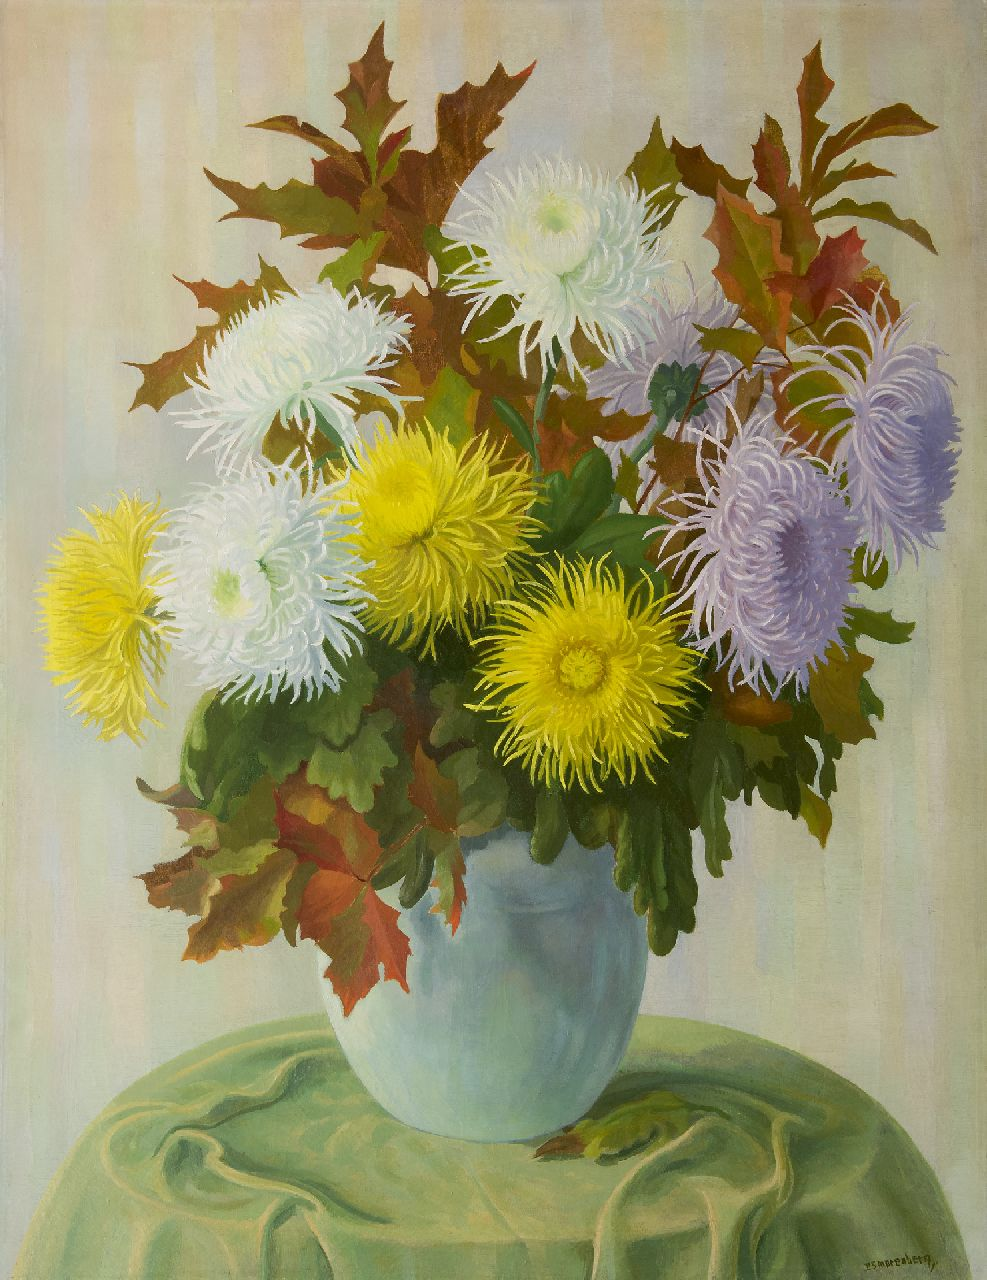 Smorenberg D.  | Dirk Smorenberg | Paintings offered for sale | Spider mums, oil on canvas 116.2 x 90.0 cm, signed l.r.